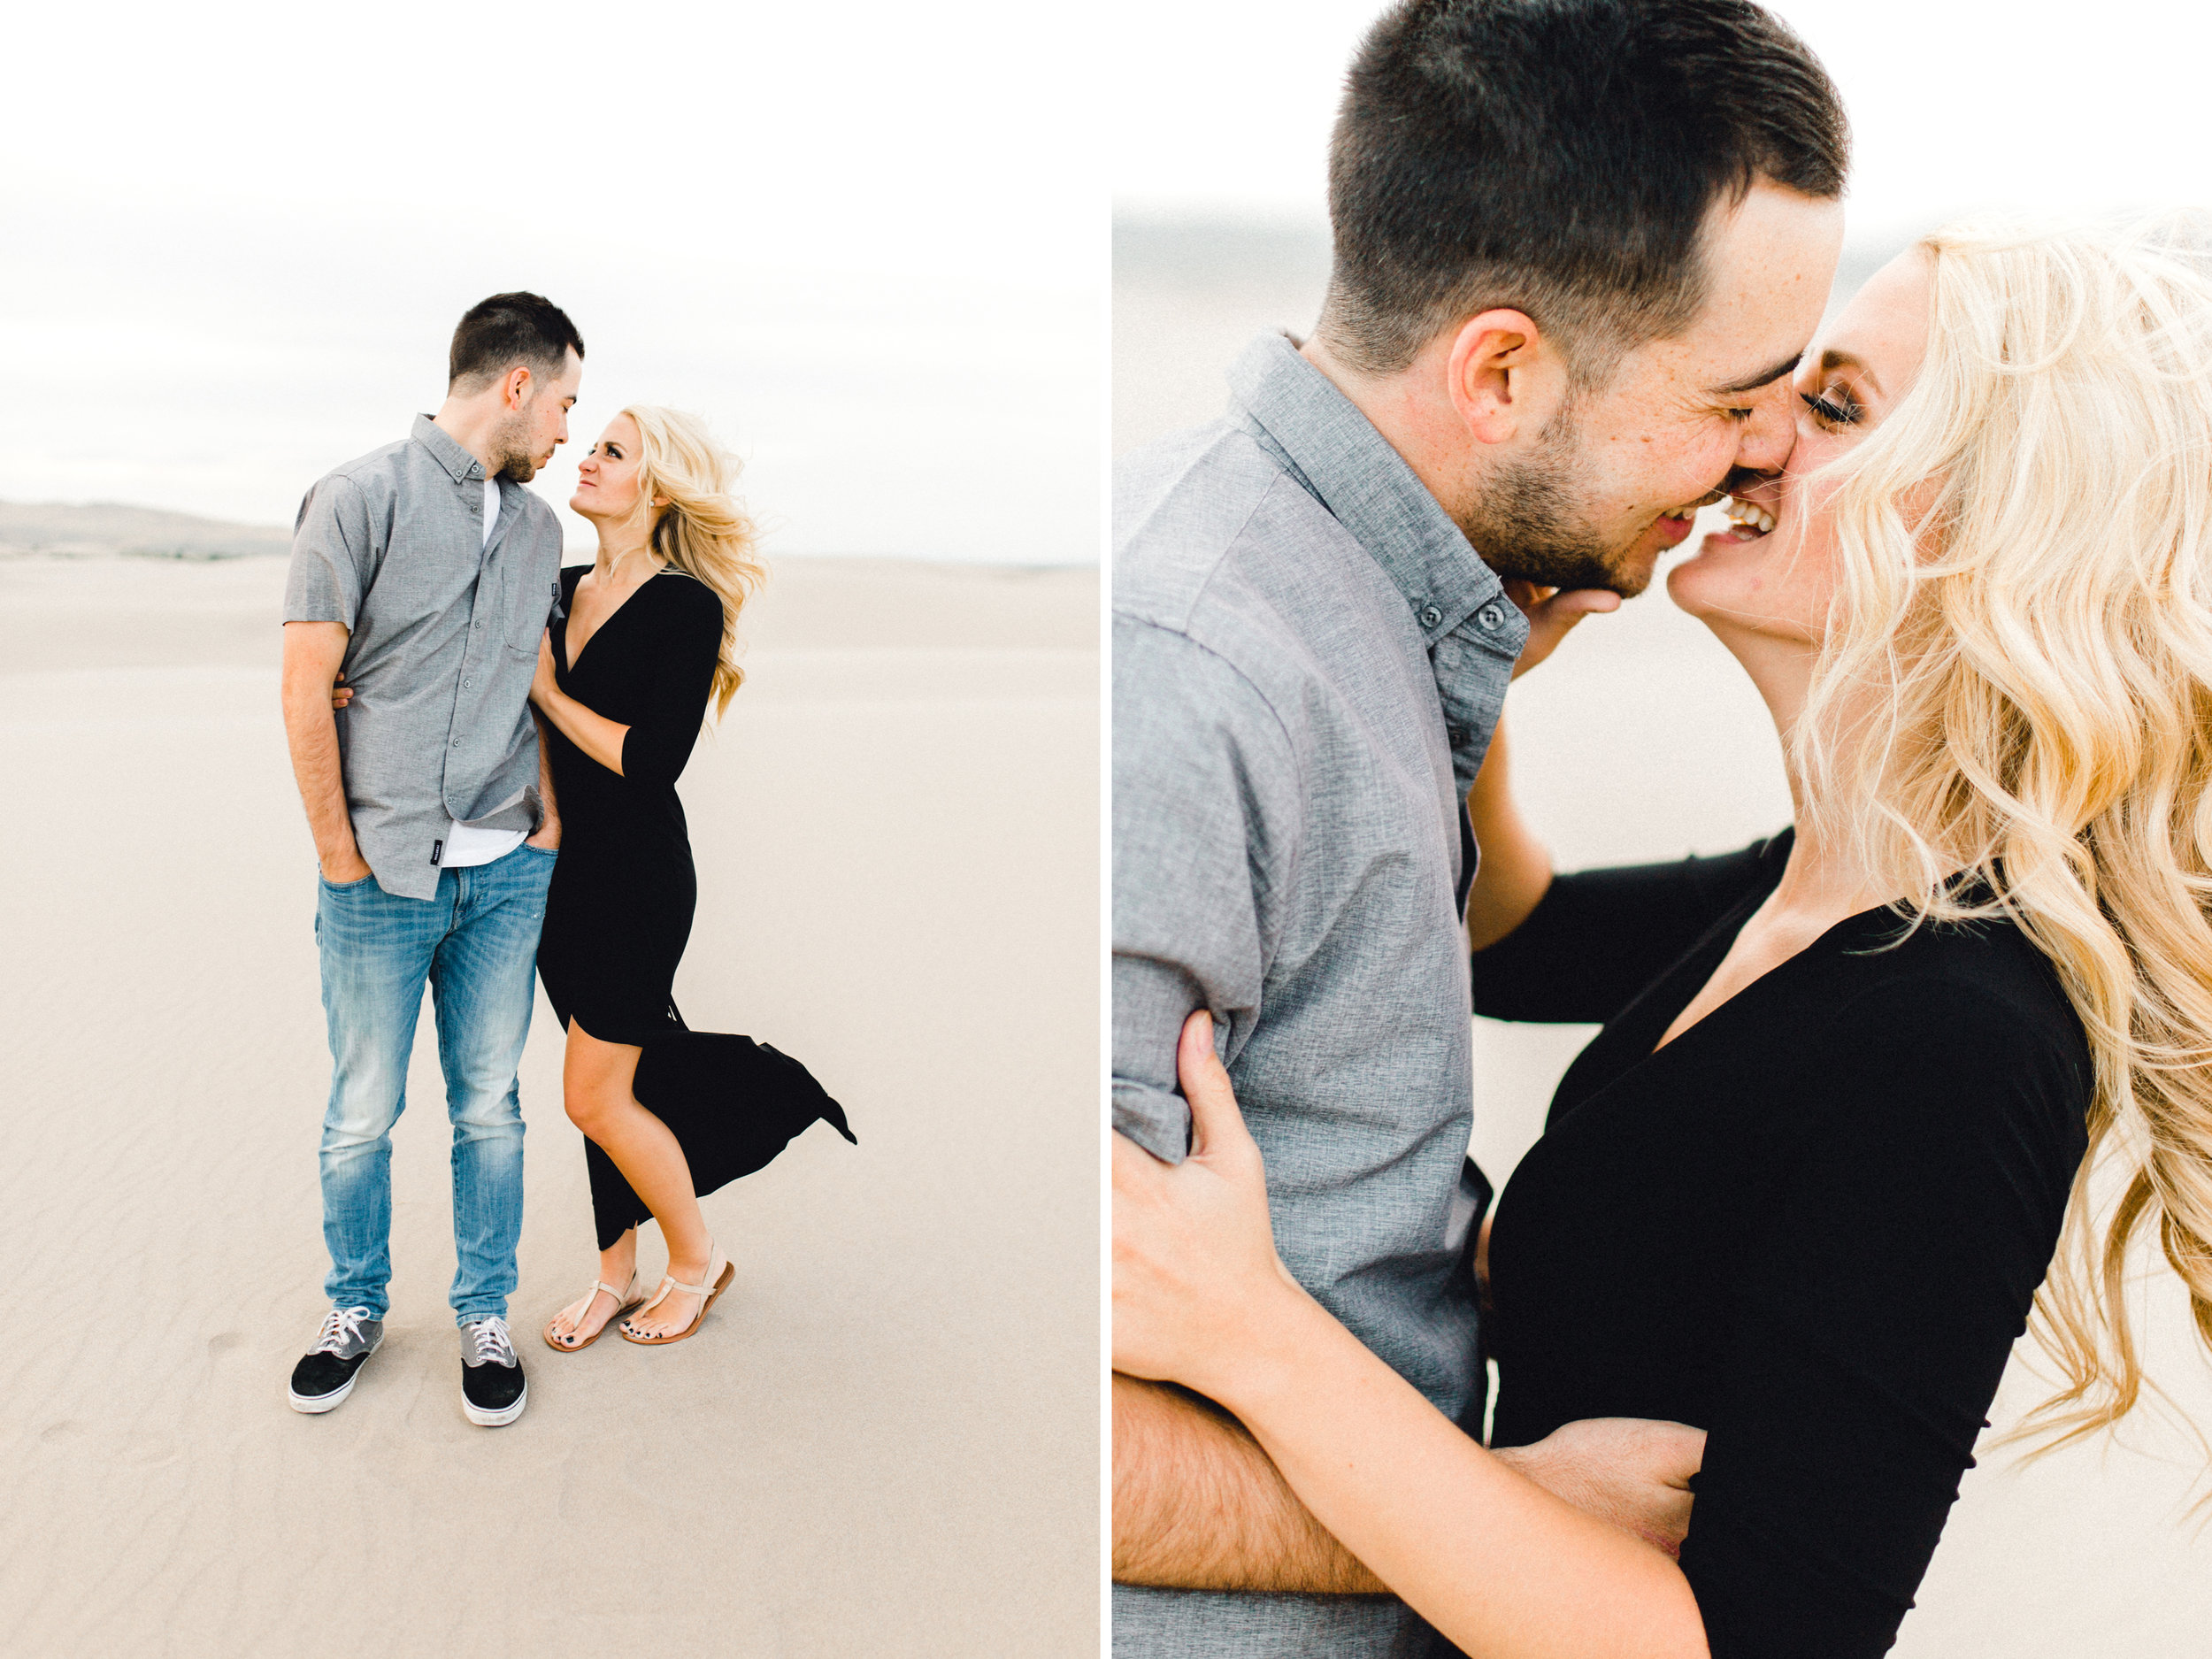 rexburg-idaho-sand-dunes-engagement-photographer-august-trevor11.jpg